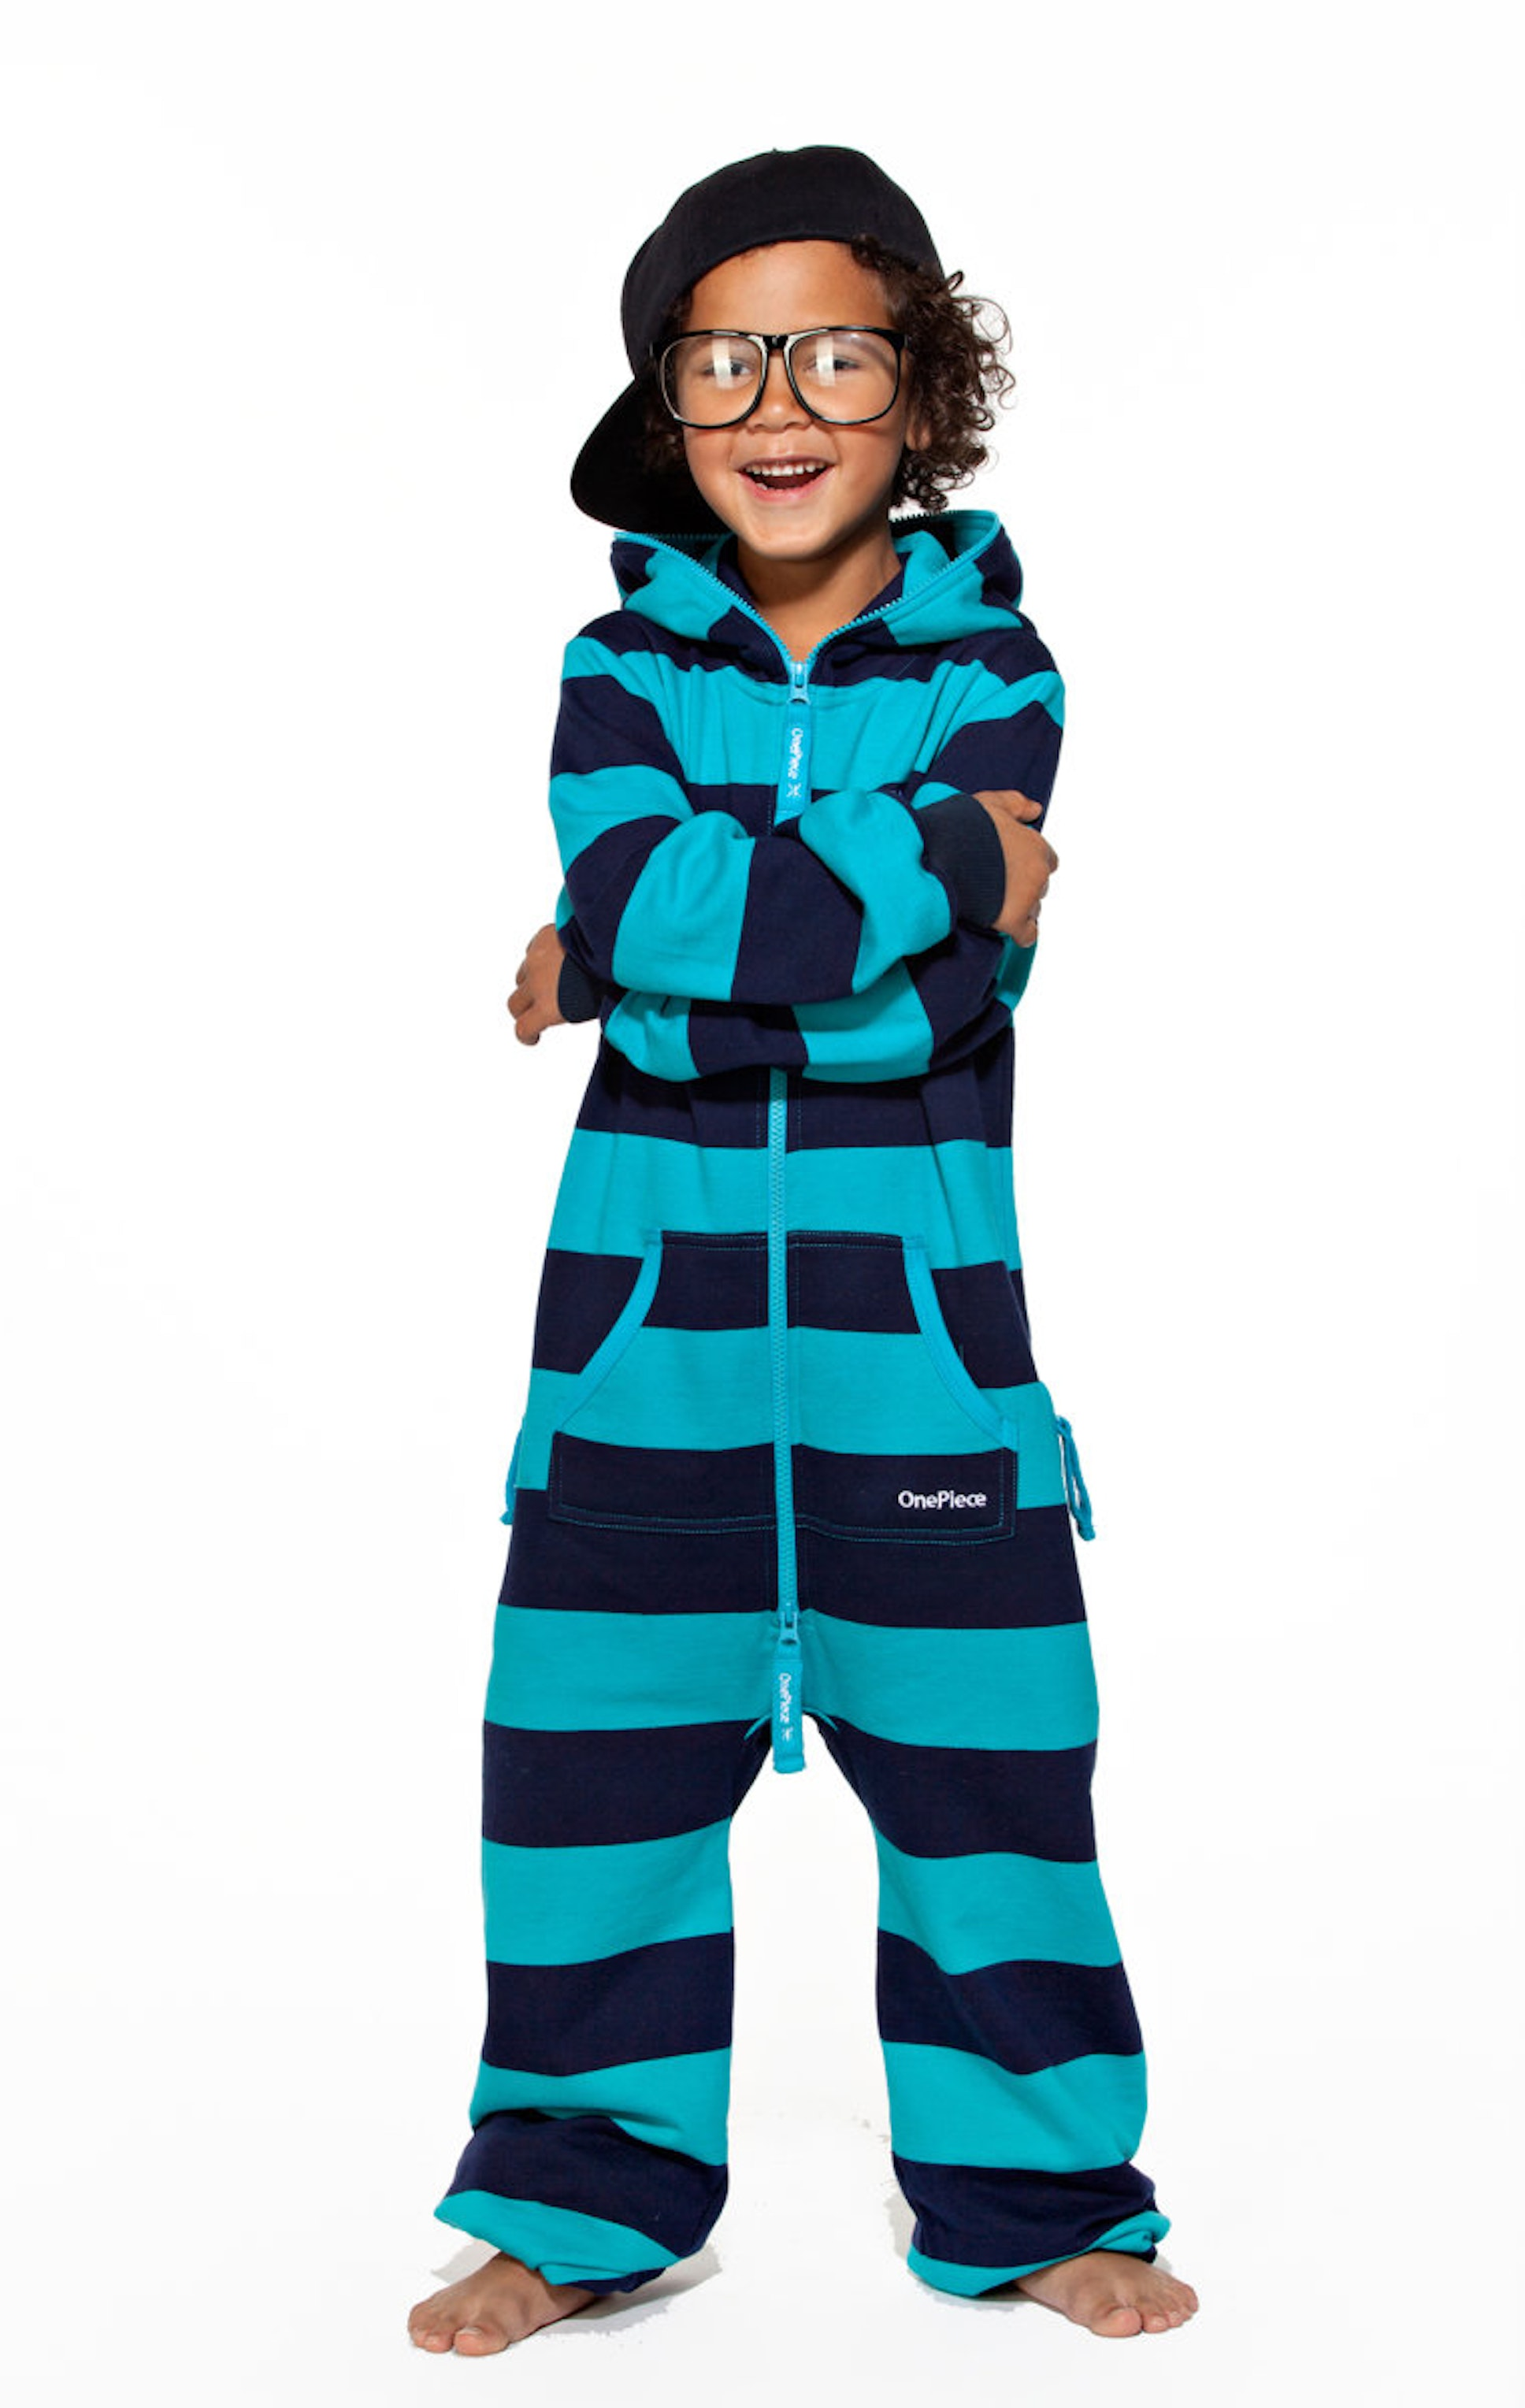 Shop for kids jumpsuits online at Target. Free shipping on purchases over $35 and save 5% every day with your Target REDcard.